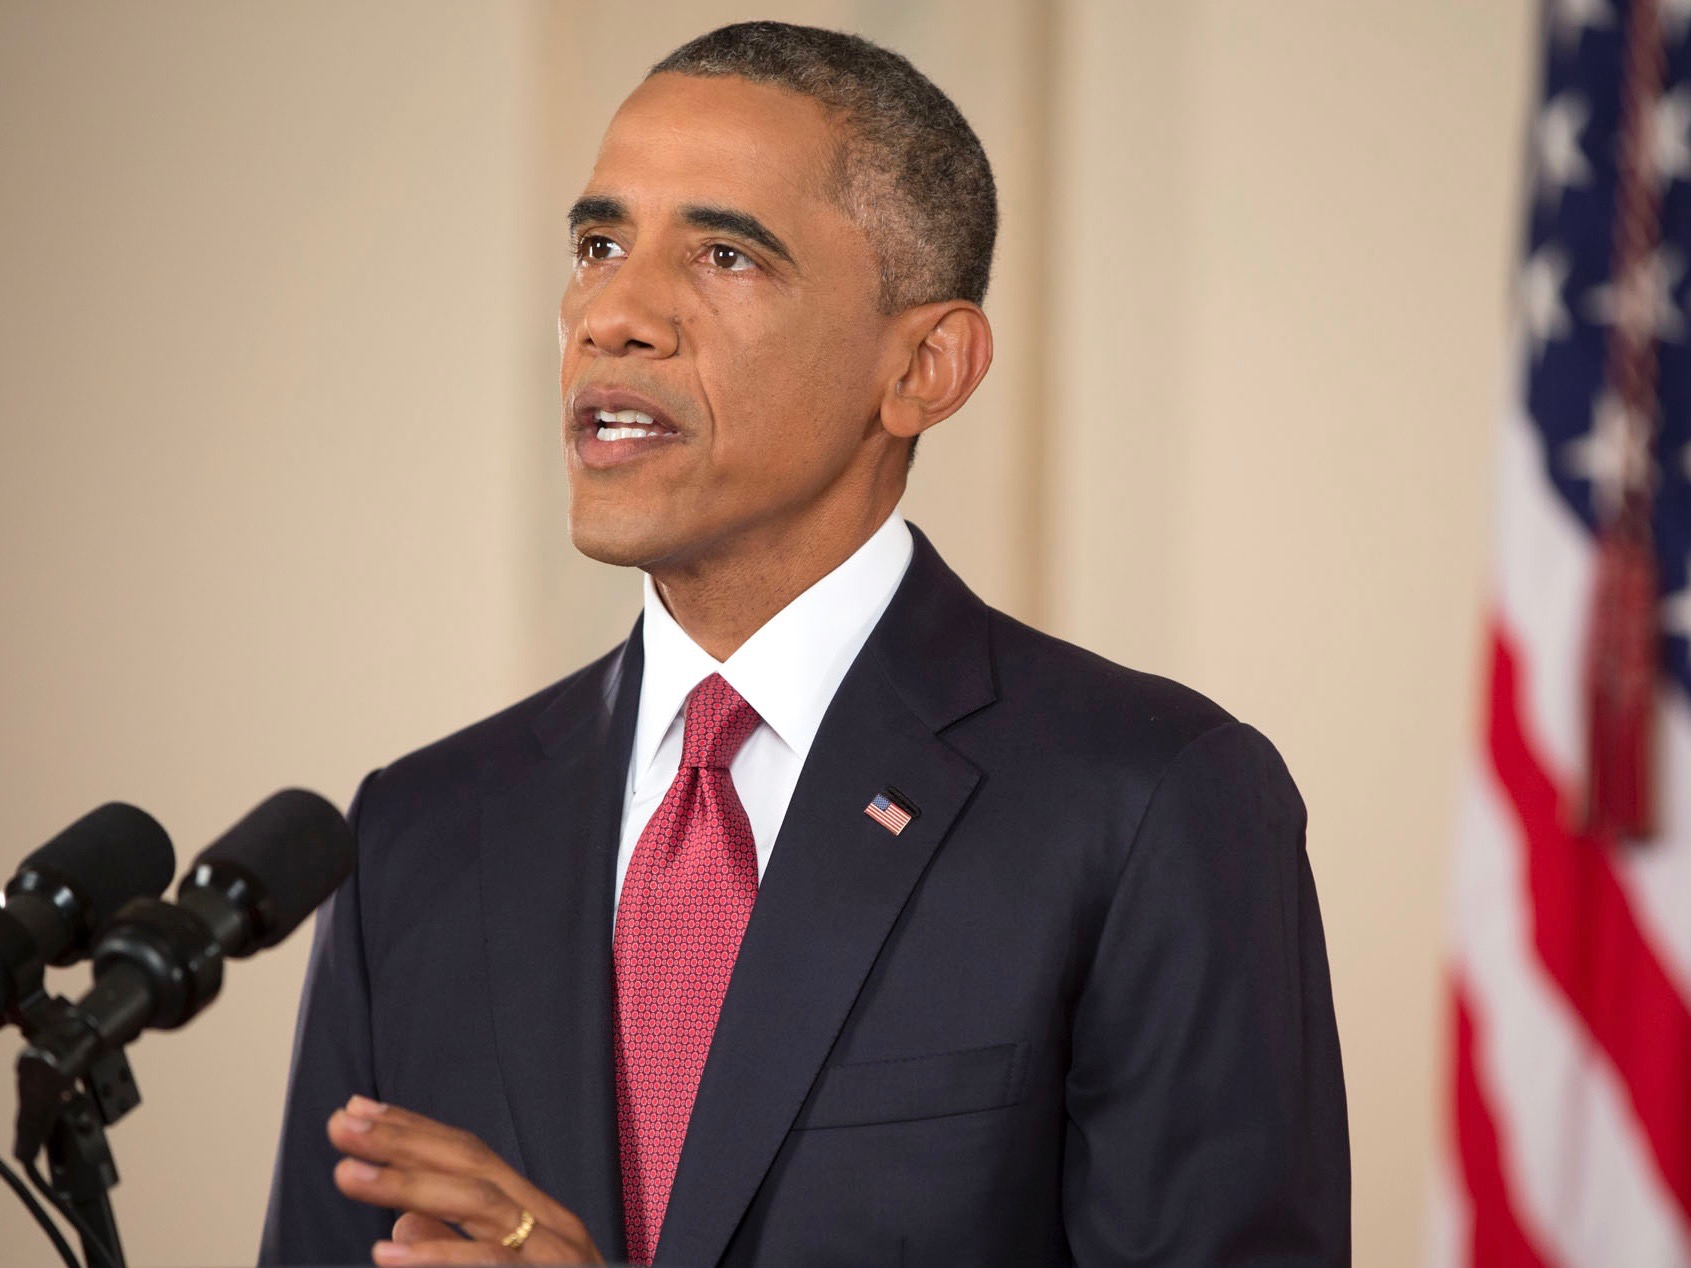 President Obama ripped Republicans, dismissed President Trump, and called young voters to action in a speech Friday at the University of Illinois. (Obama White House Archives)